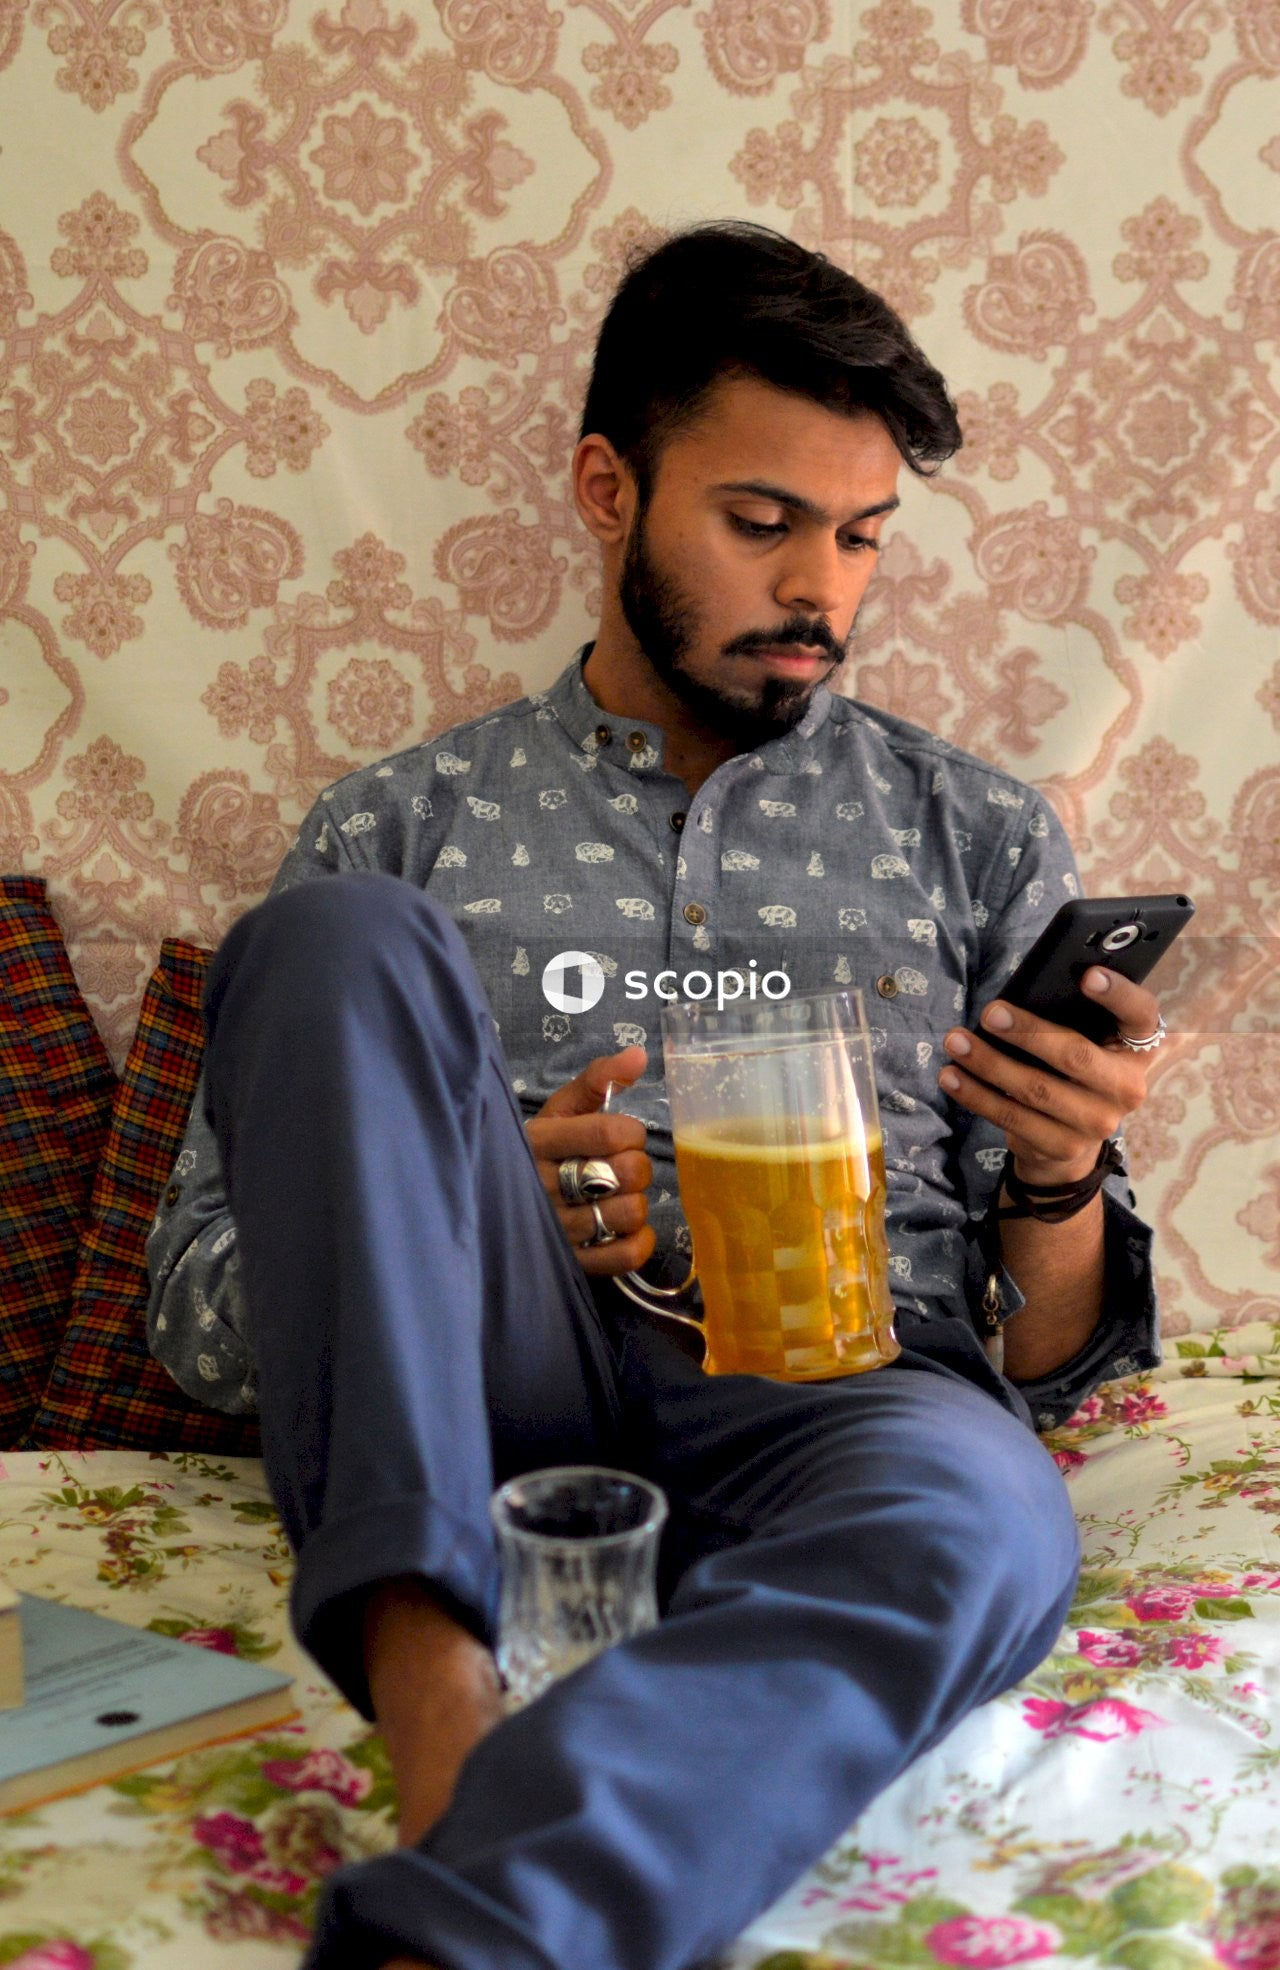 Man in gray and white floral button up shirt holding black smartphone